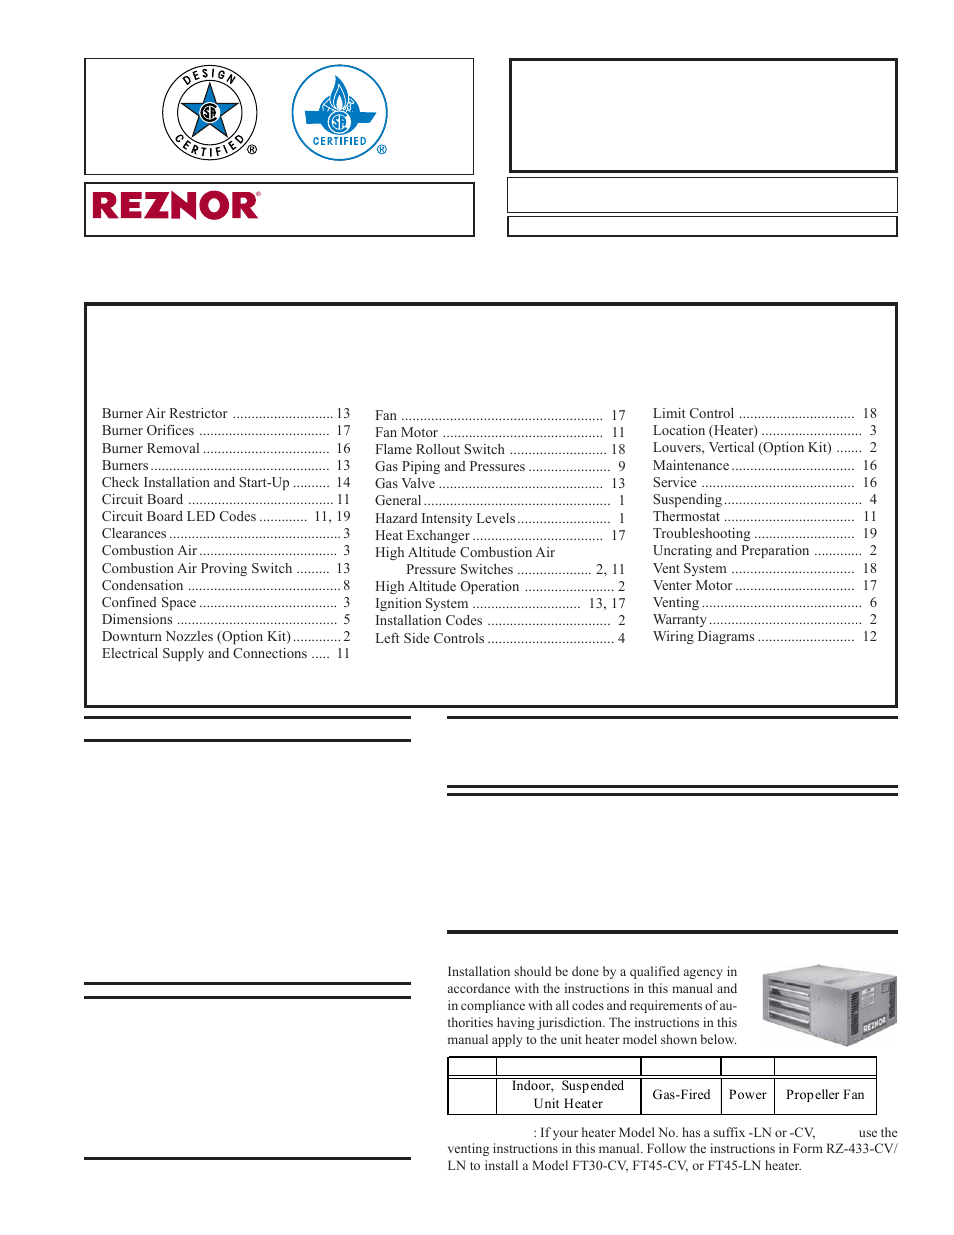 reznor ft unit installation manual page2 reznor heater wiring schematic efcaviation com reznor eexl wiring diagram at webbmarketing.co